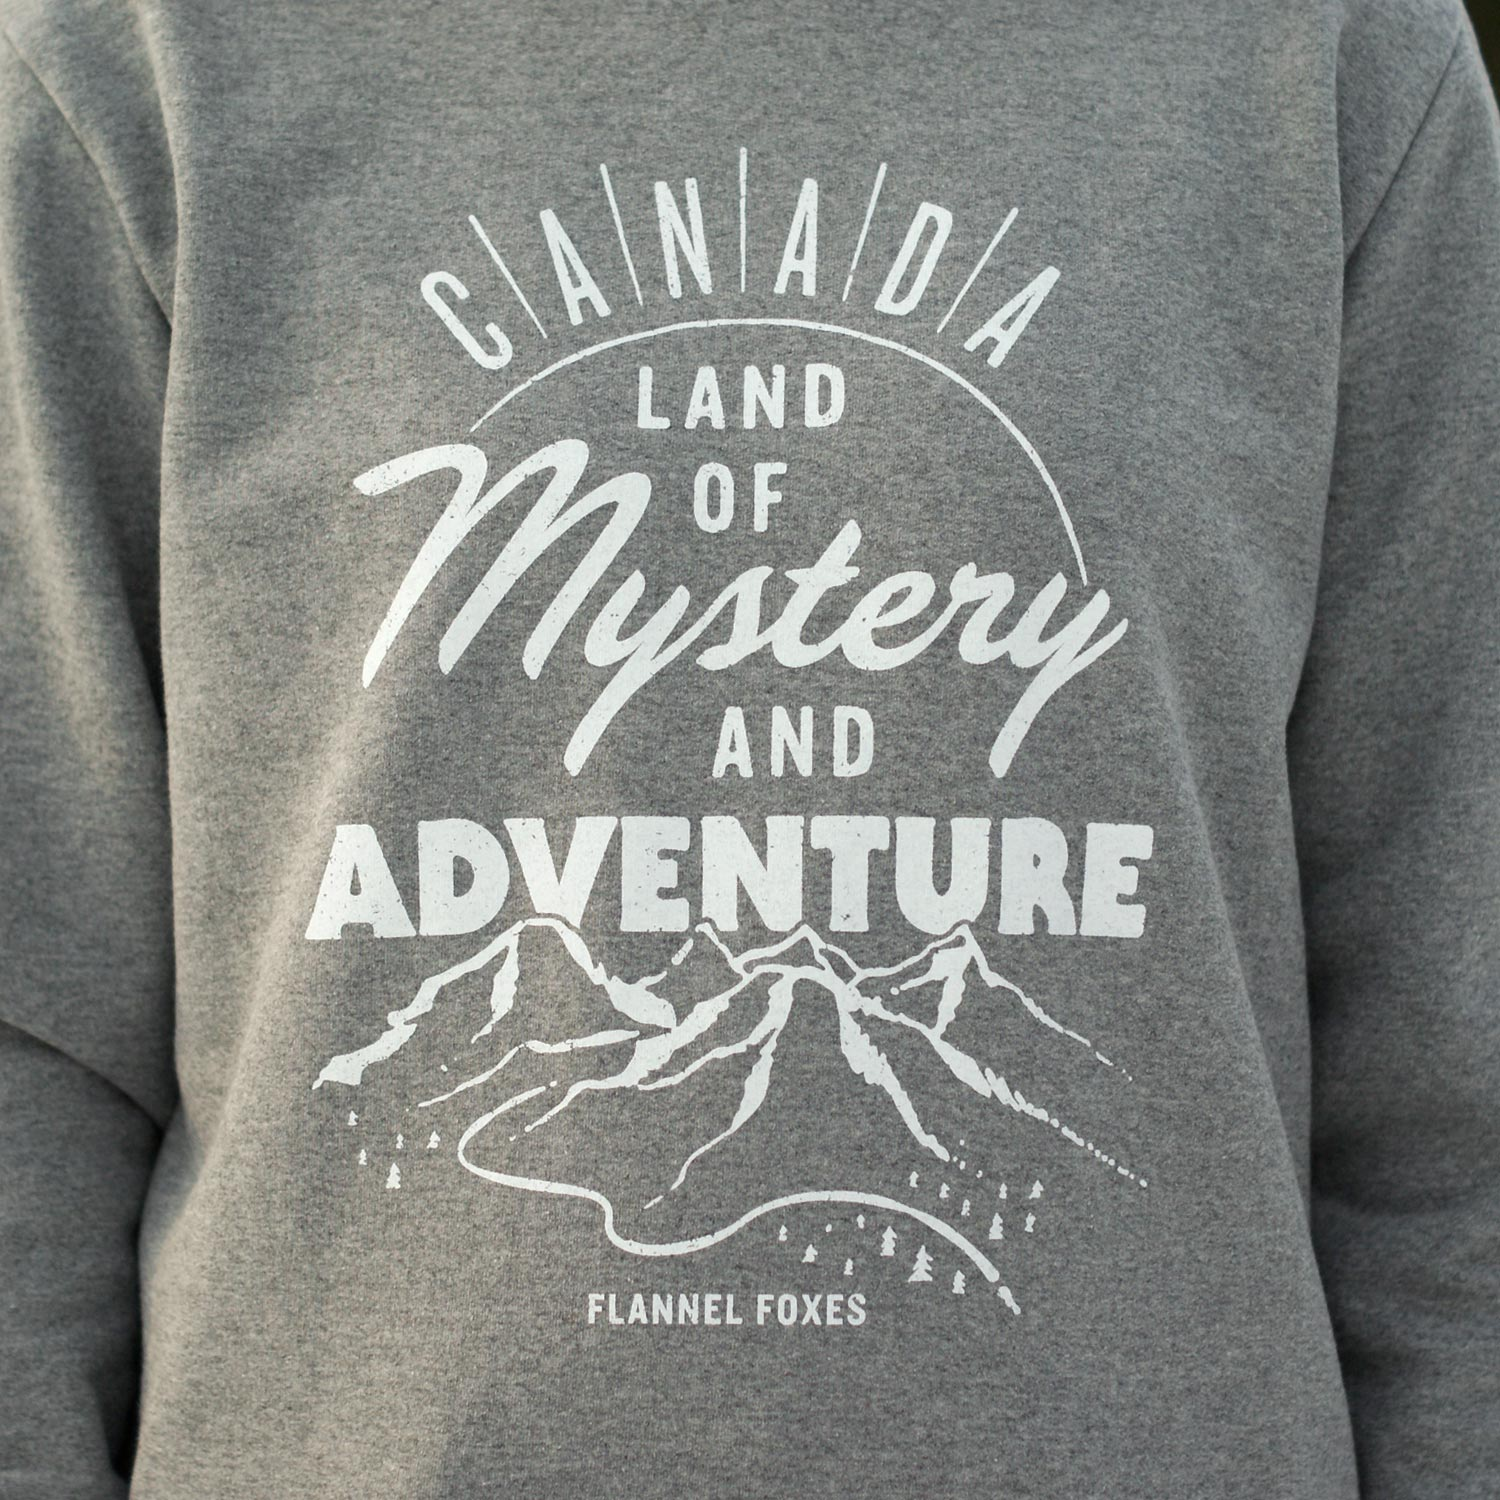 Mystery & Adventure Sweatshirt